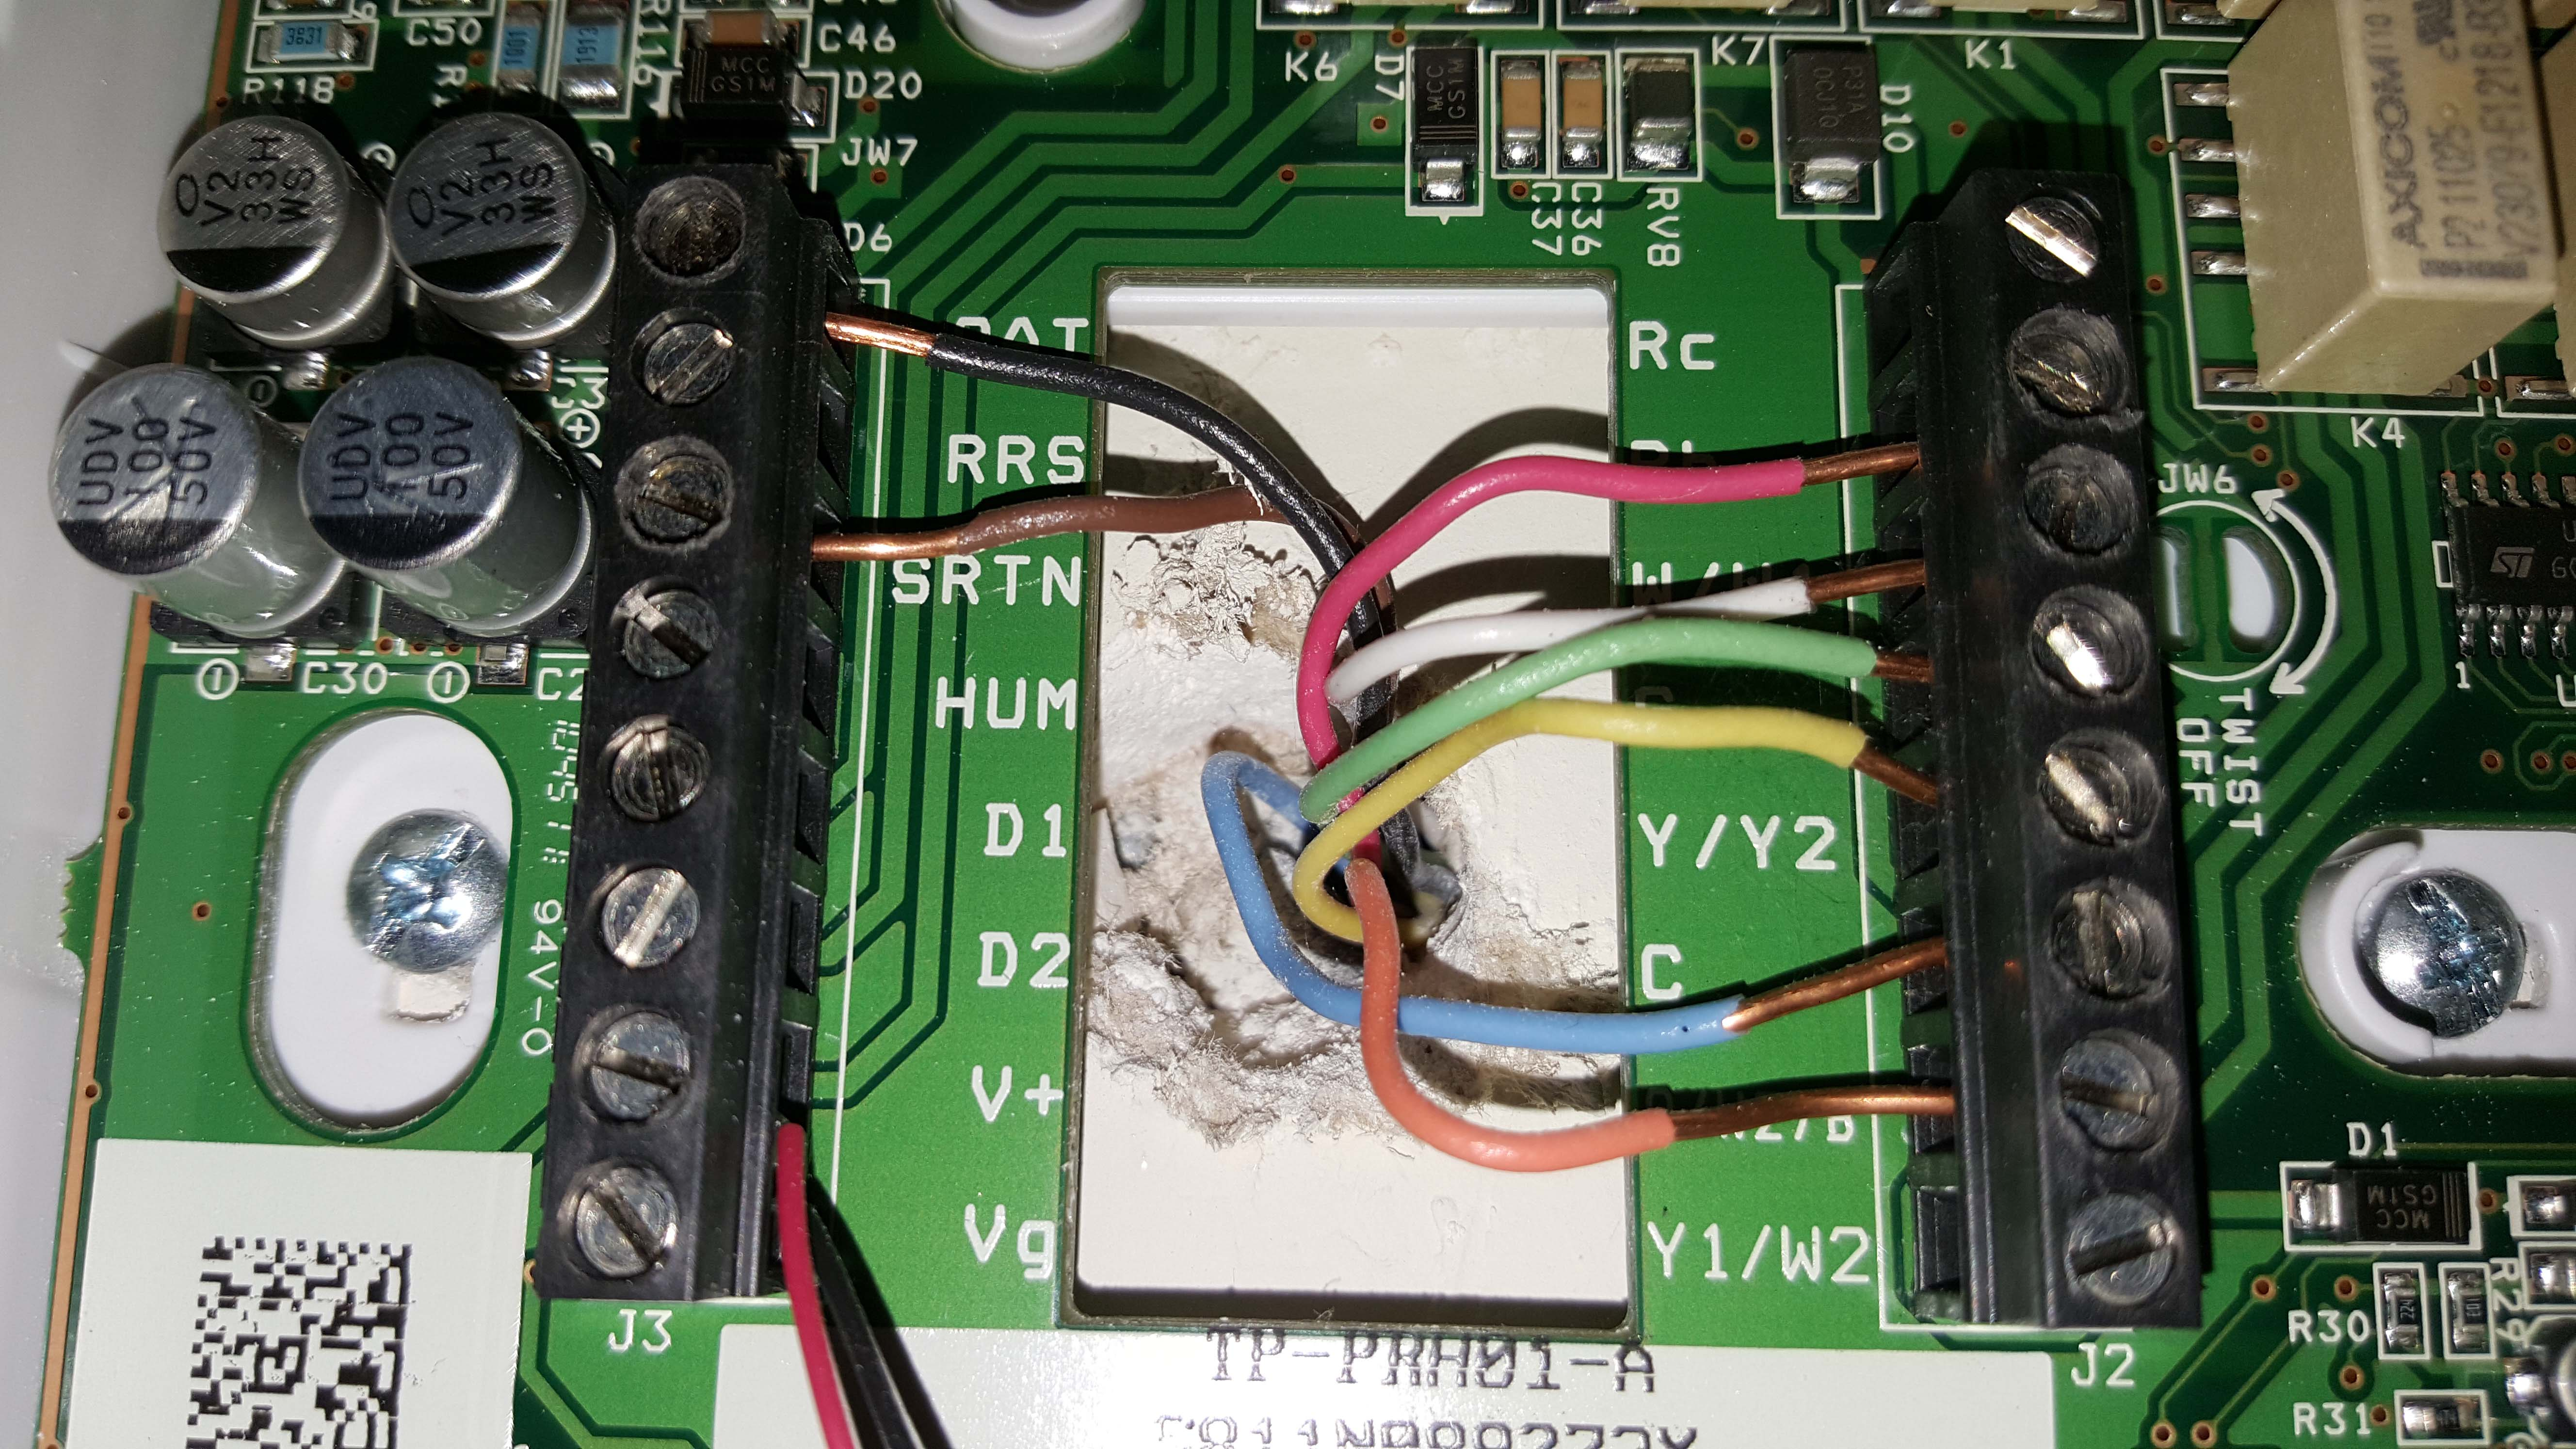 I Have A Carrier Hvac Dual Fuel System That Has Vg And V Wires Nest Wiring Diagram Boiler